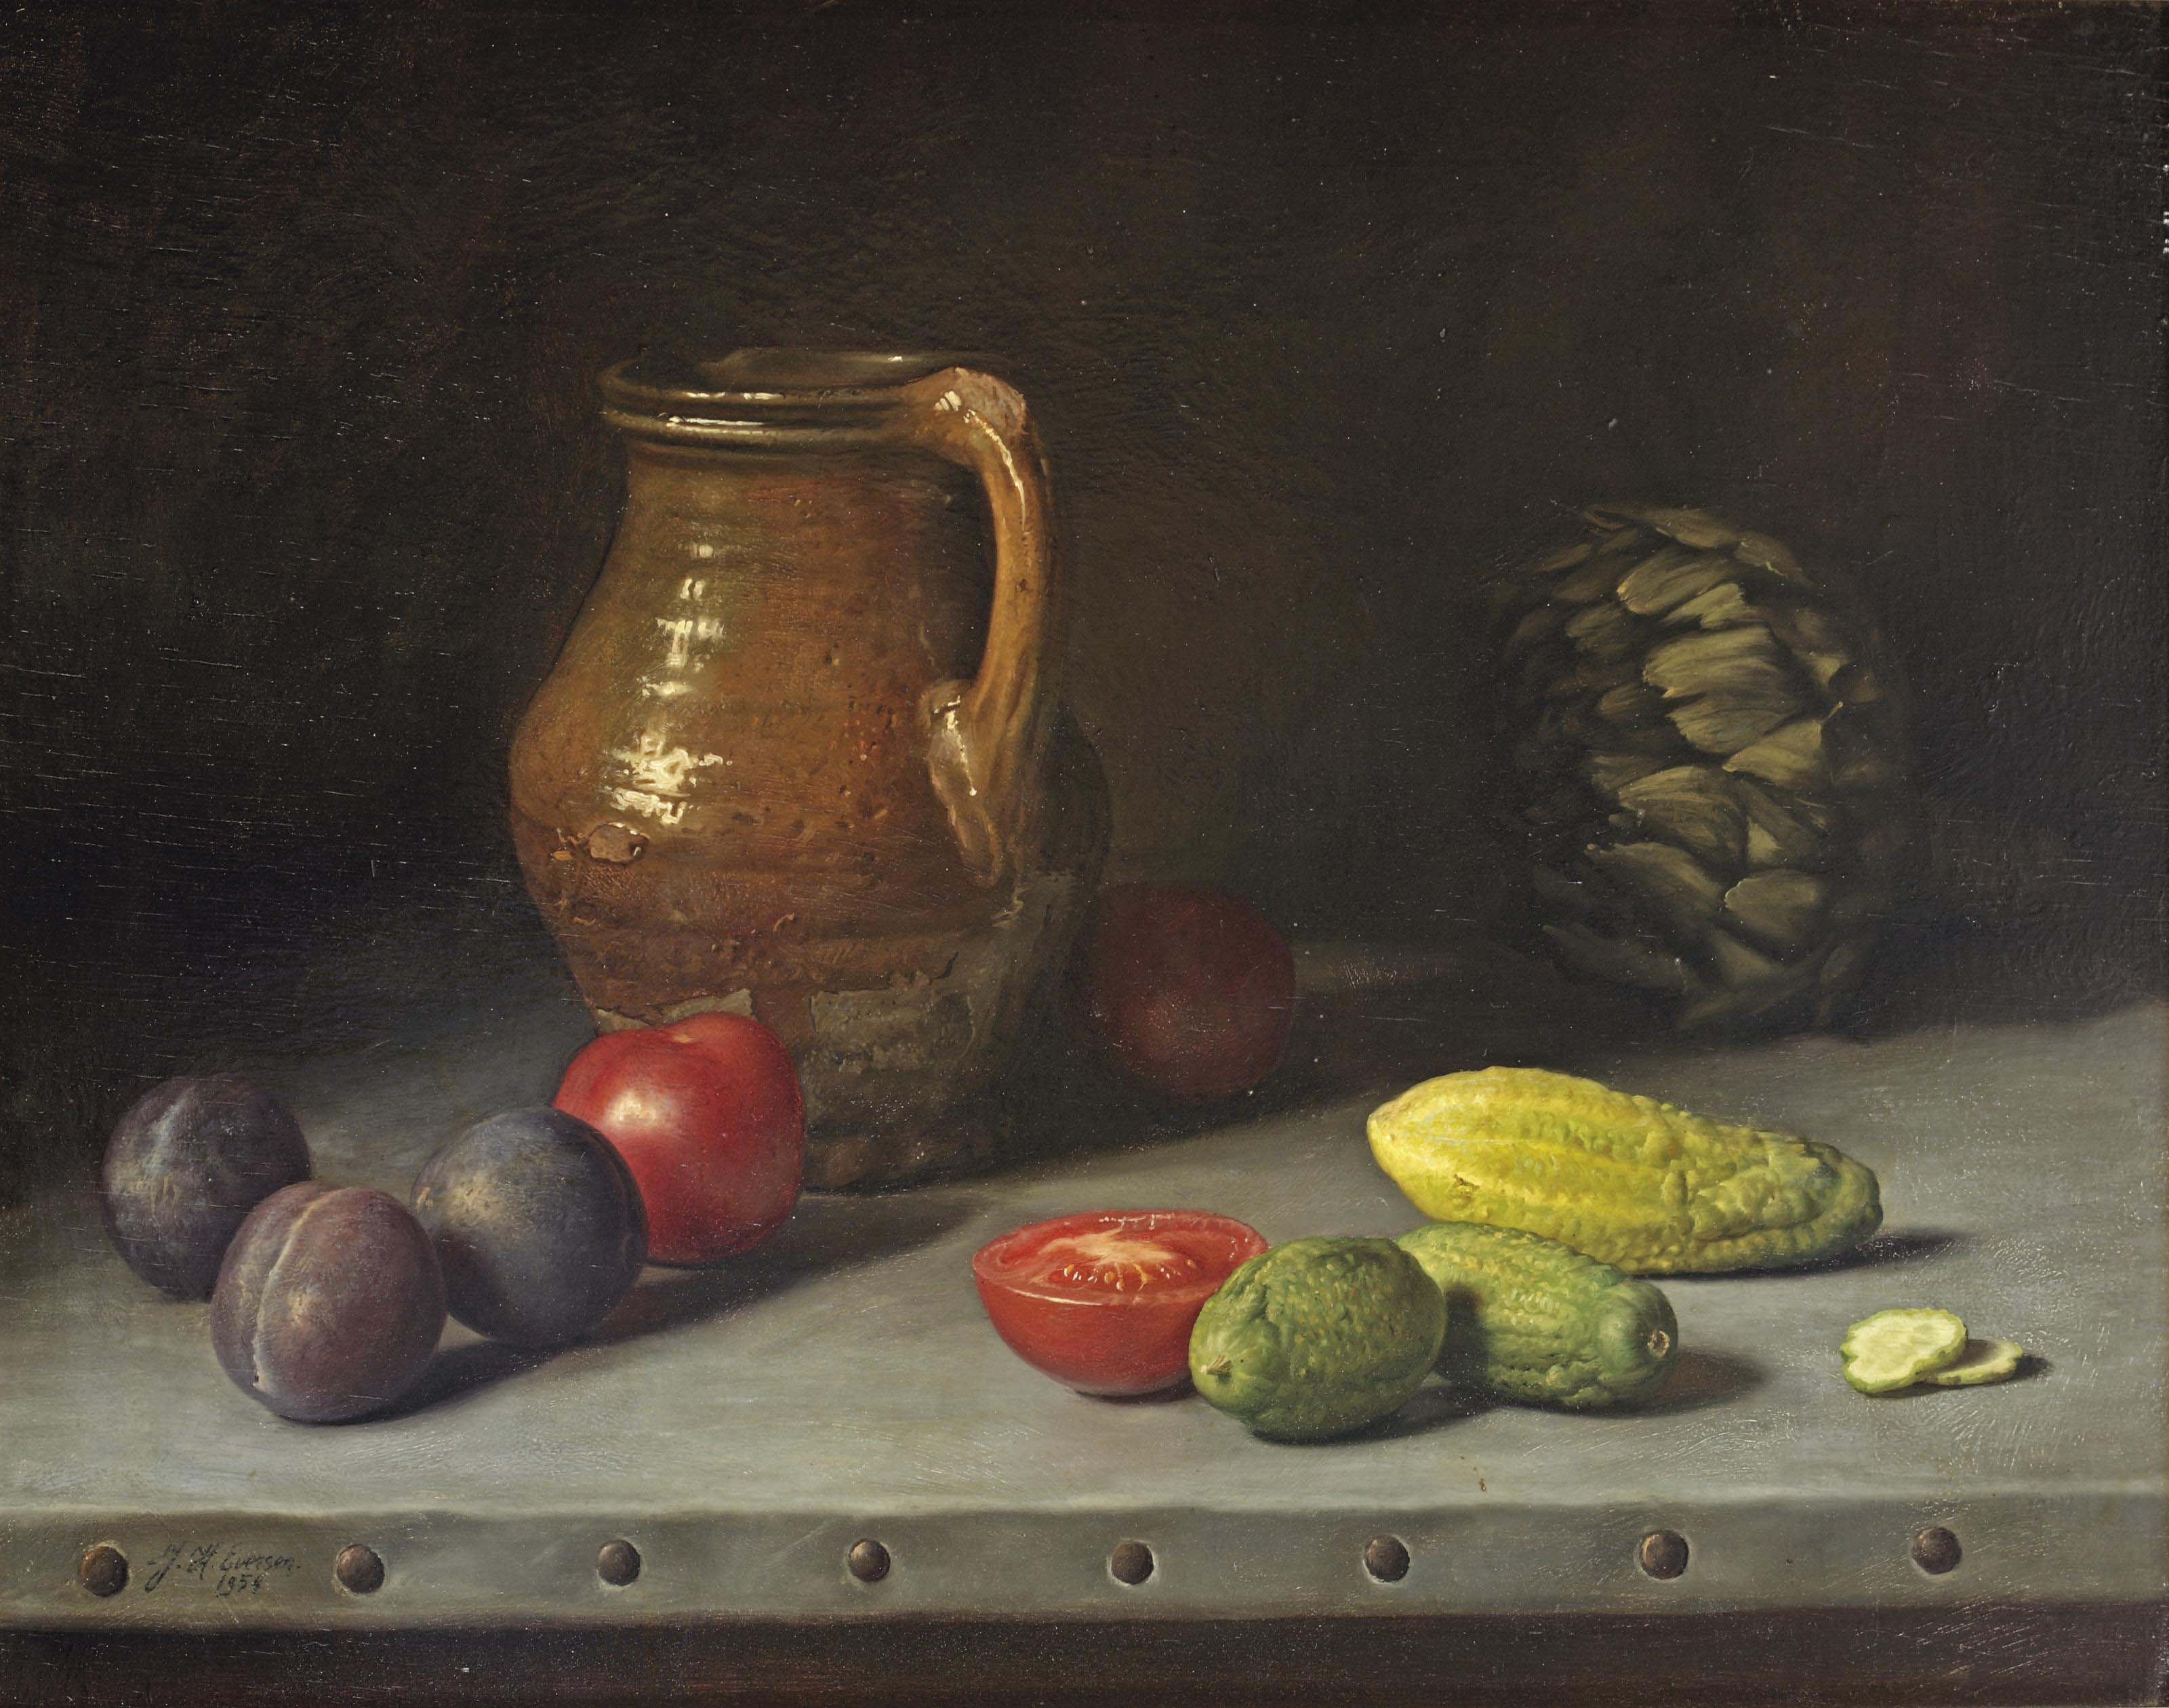 A stoneware jug with plums, tomatoes, pickles and an artichoke on a ledge